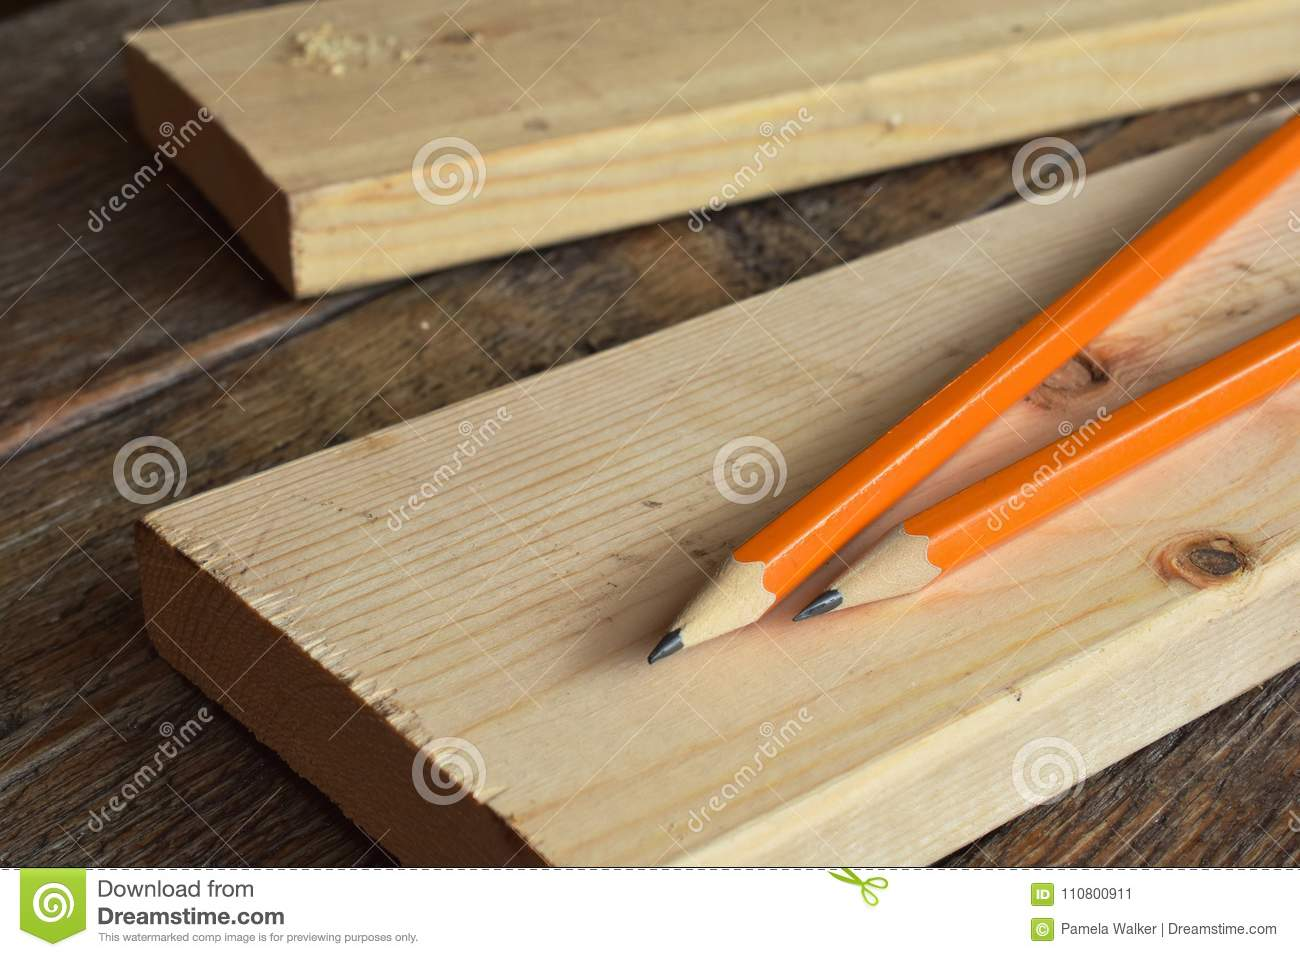 Wondrous Carpentry Work Bench Close Up Stock Image Image Of Machost Co Dining Chair Design Ideas Machostcouk